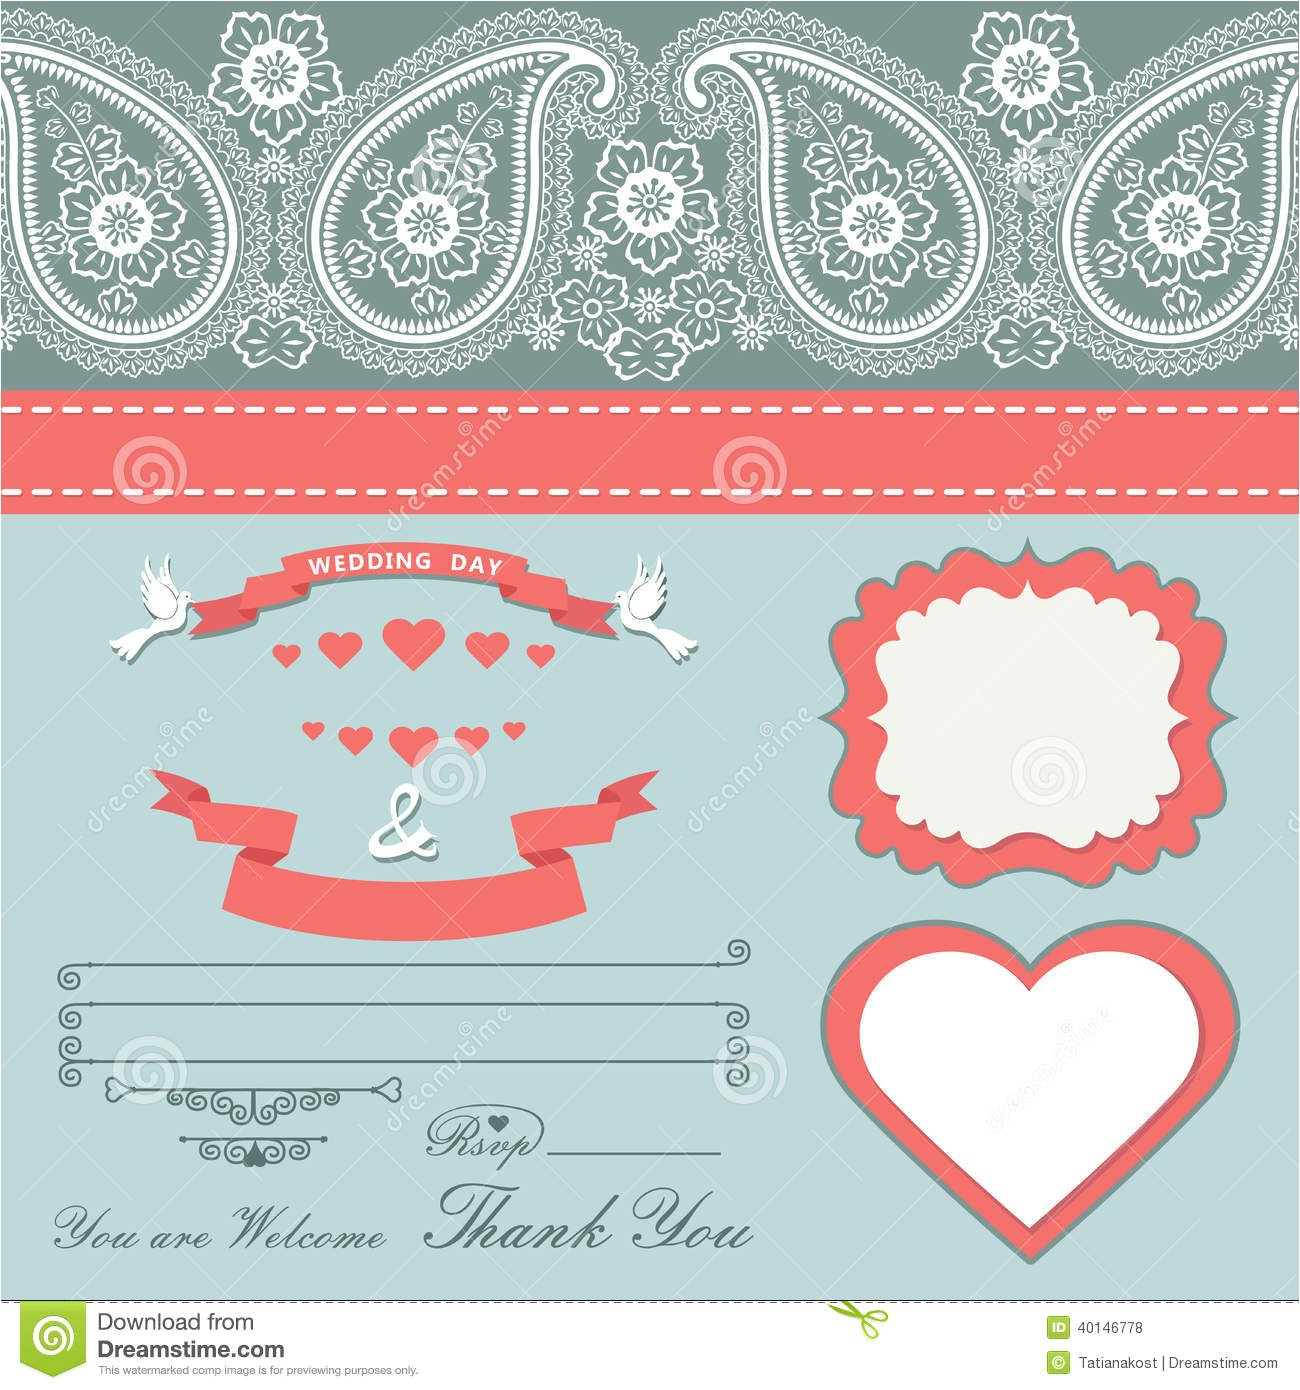 royalty free stock photos wedding design template paisley border cartoon hearts templat set retro style vignettes ribbon pigeons imitation lace image40146778